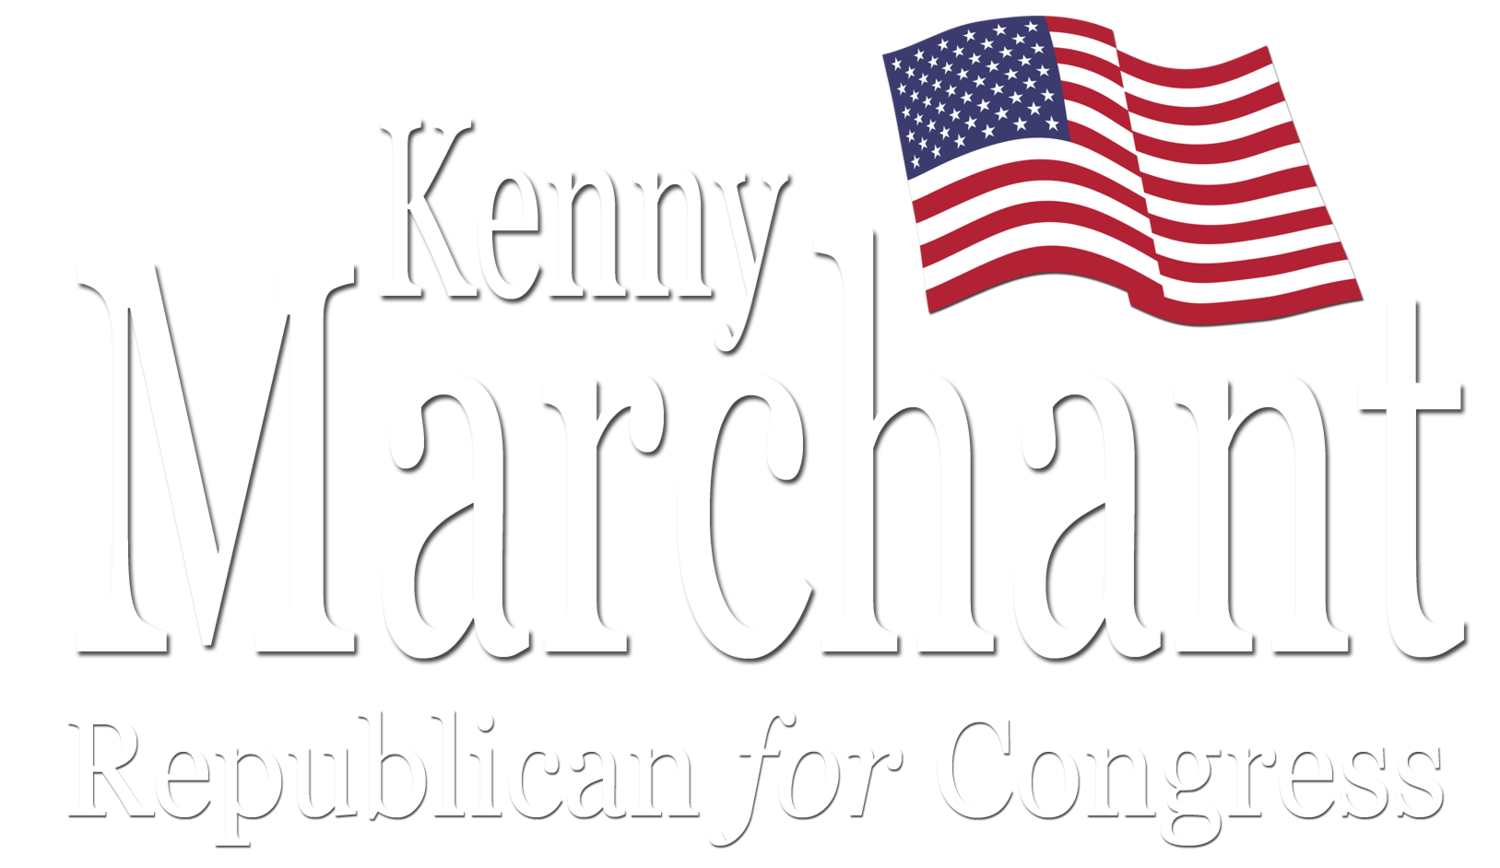 Kenny Marchant for Congress